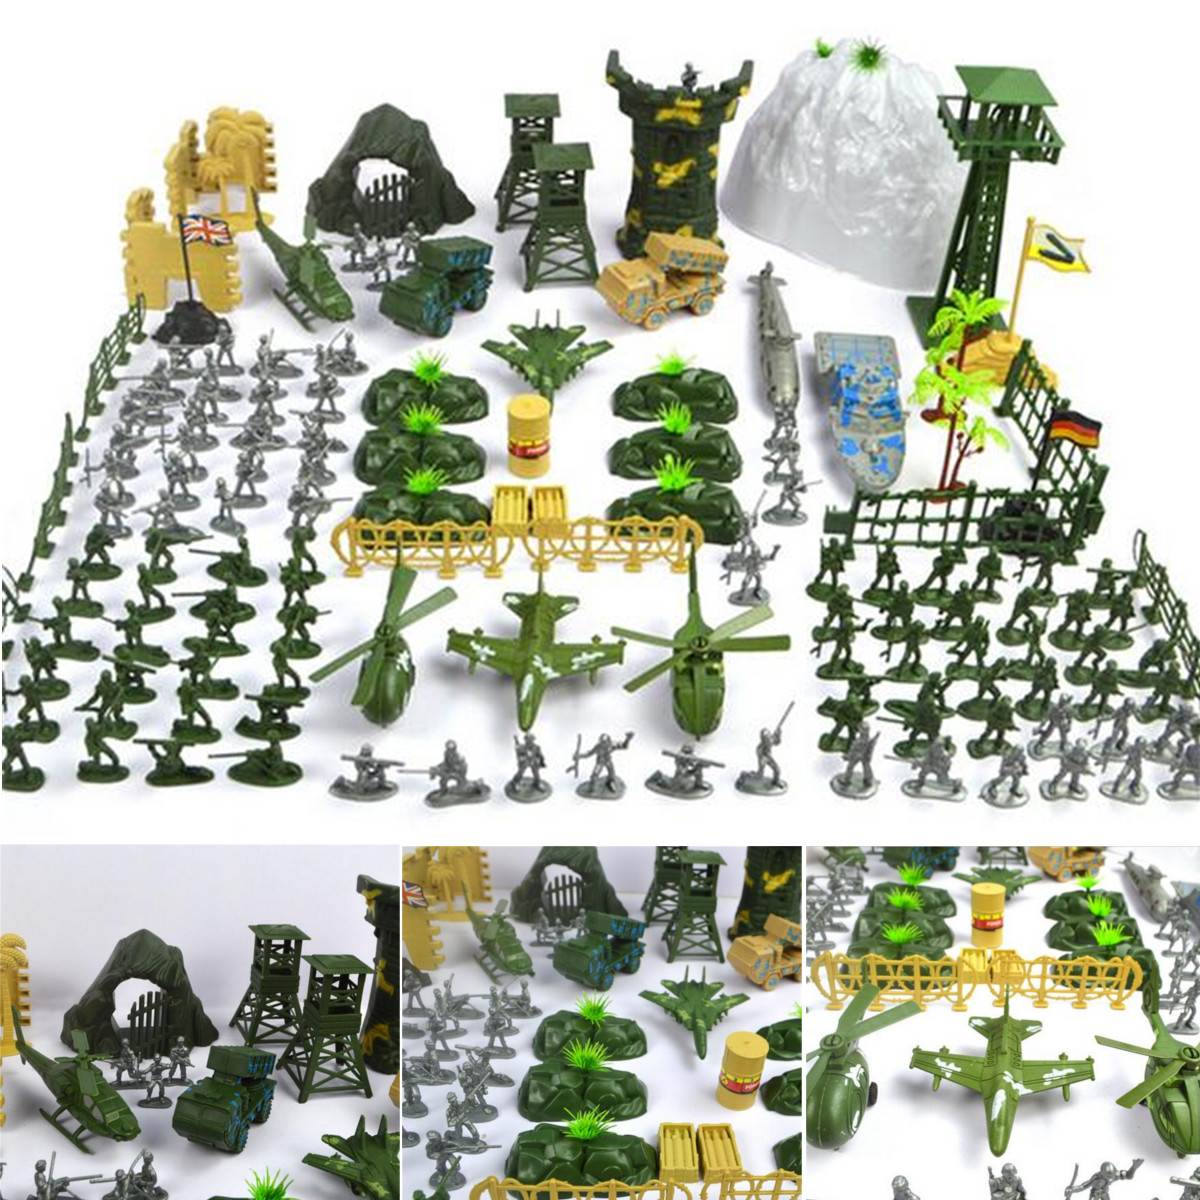 New Arrival 150 pcs/set Military Plastic Toy Soldier Army Men Figures & Accessories Playset Kit Gift Model Toy For Kids Boys new in box toy story spaceship command center playset nice gift